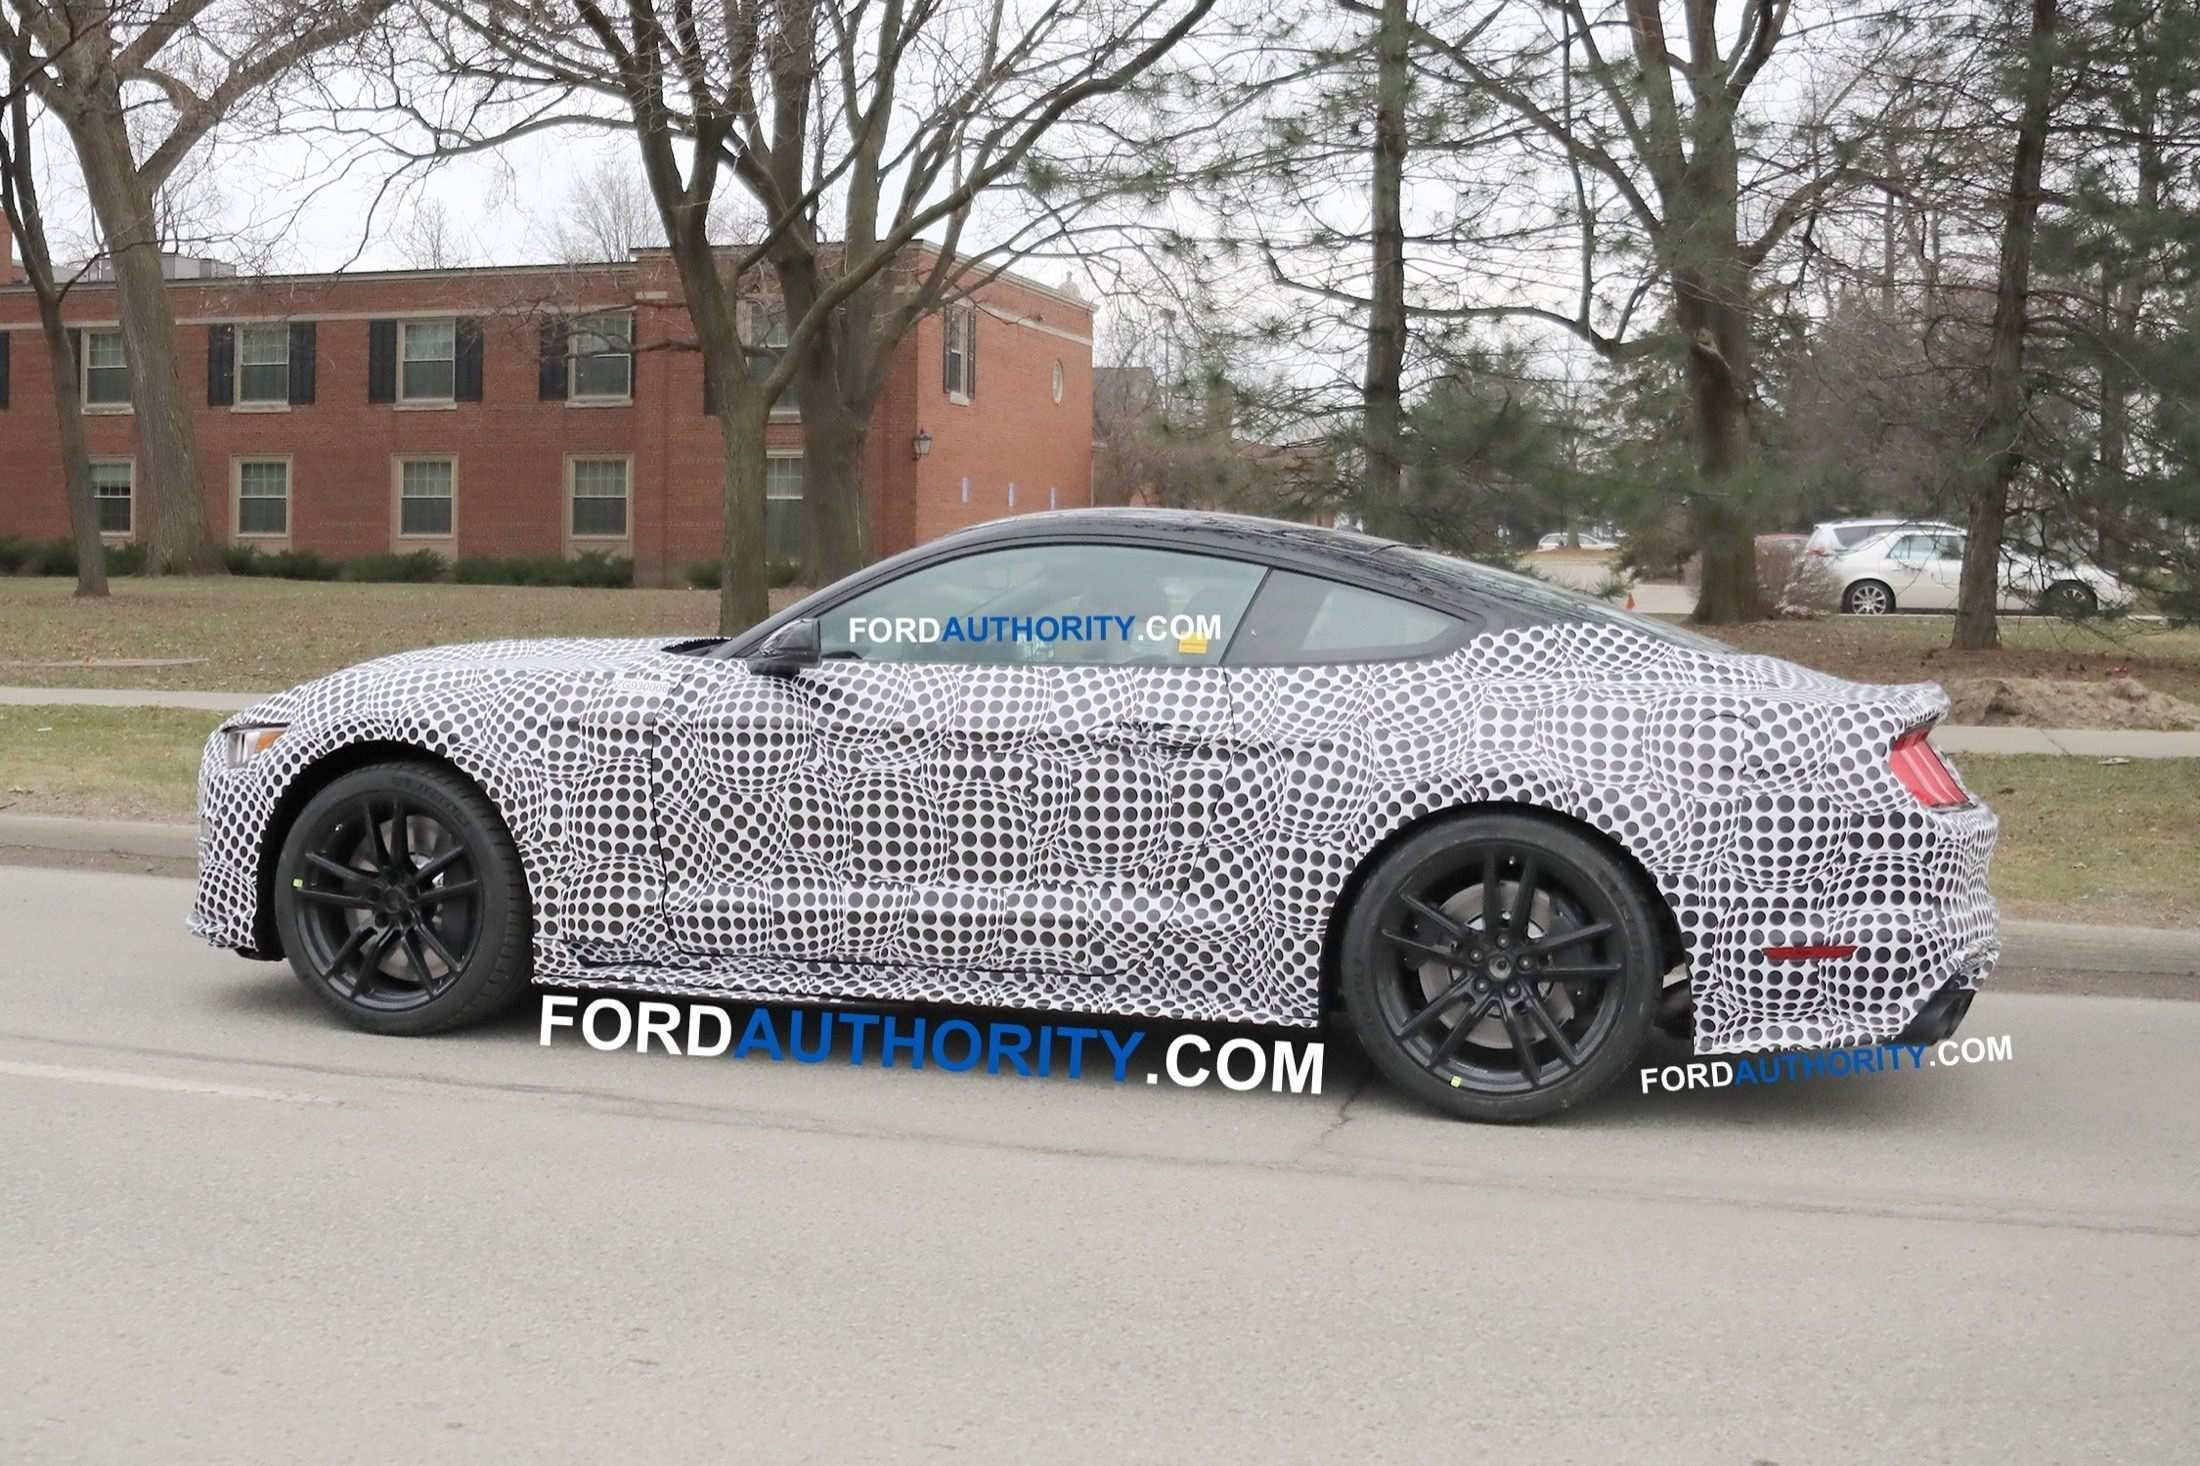 50 All New 2020 The Spy Shots Ford Mustang Svt Gt 500 Model